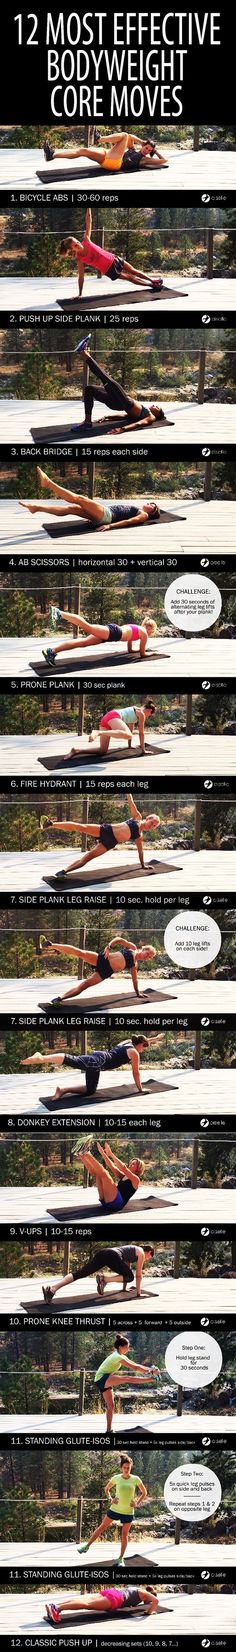 26 basic bodyweight exercises you can do at home 12 most effective bodyweight core exercises to reduce love handles! how to loose weight